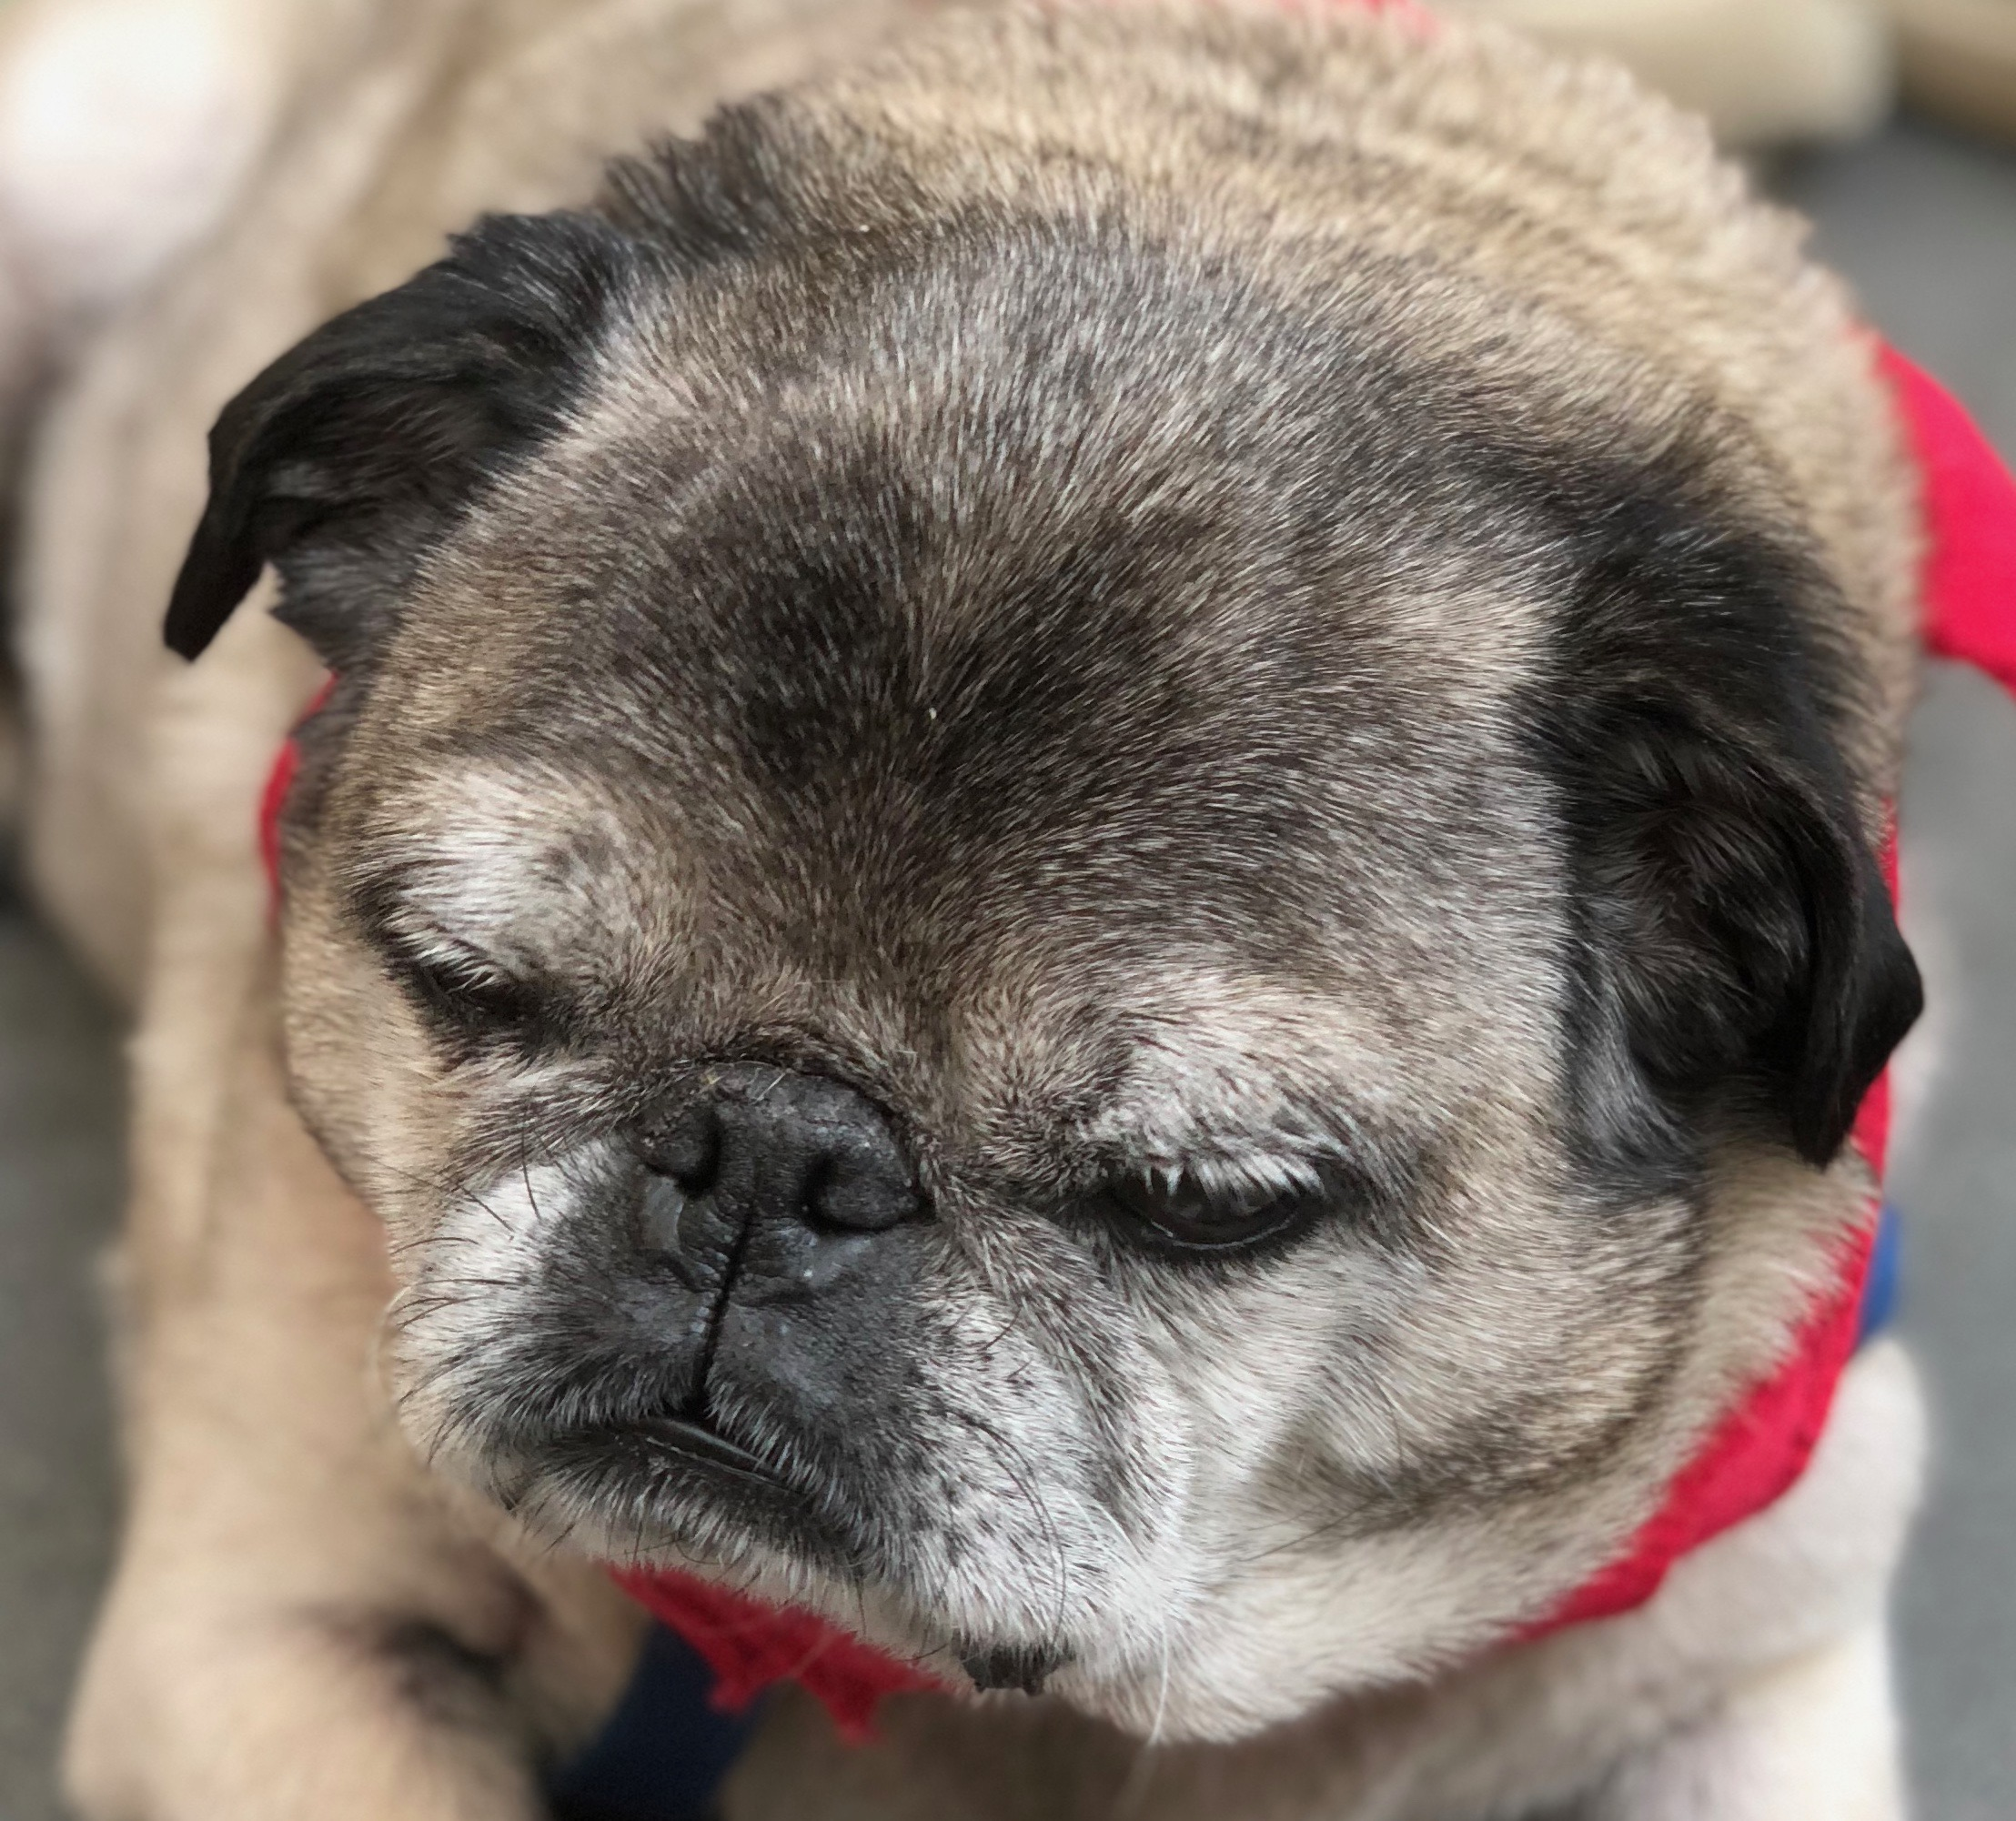 Tired-Looking Old Pug With Red Bandana